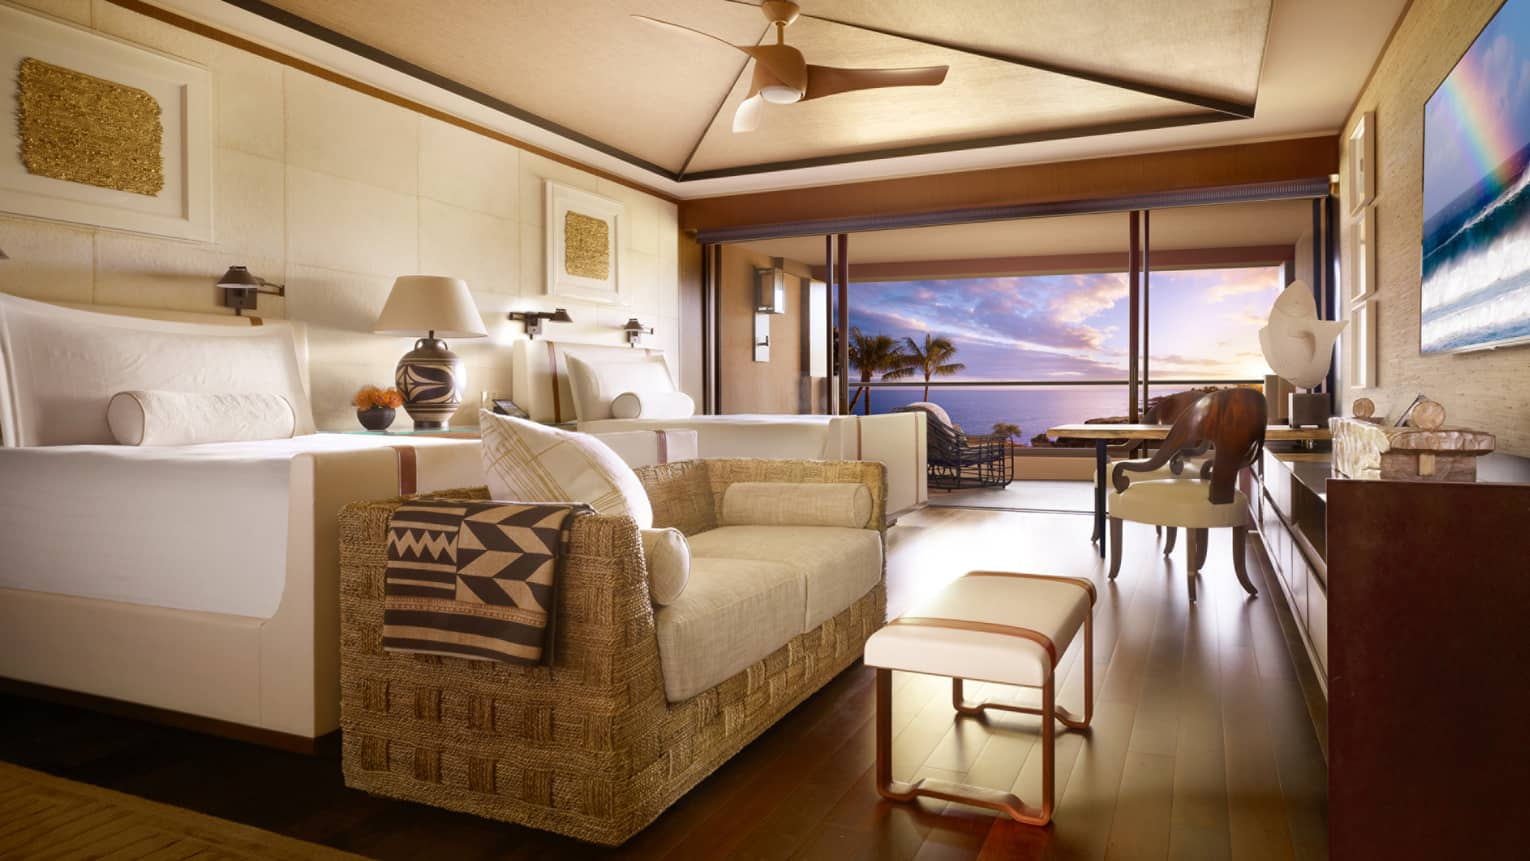 Ocean-View Room bed with loveseat, table at foot by open wall to balcony, sunset